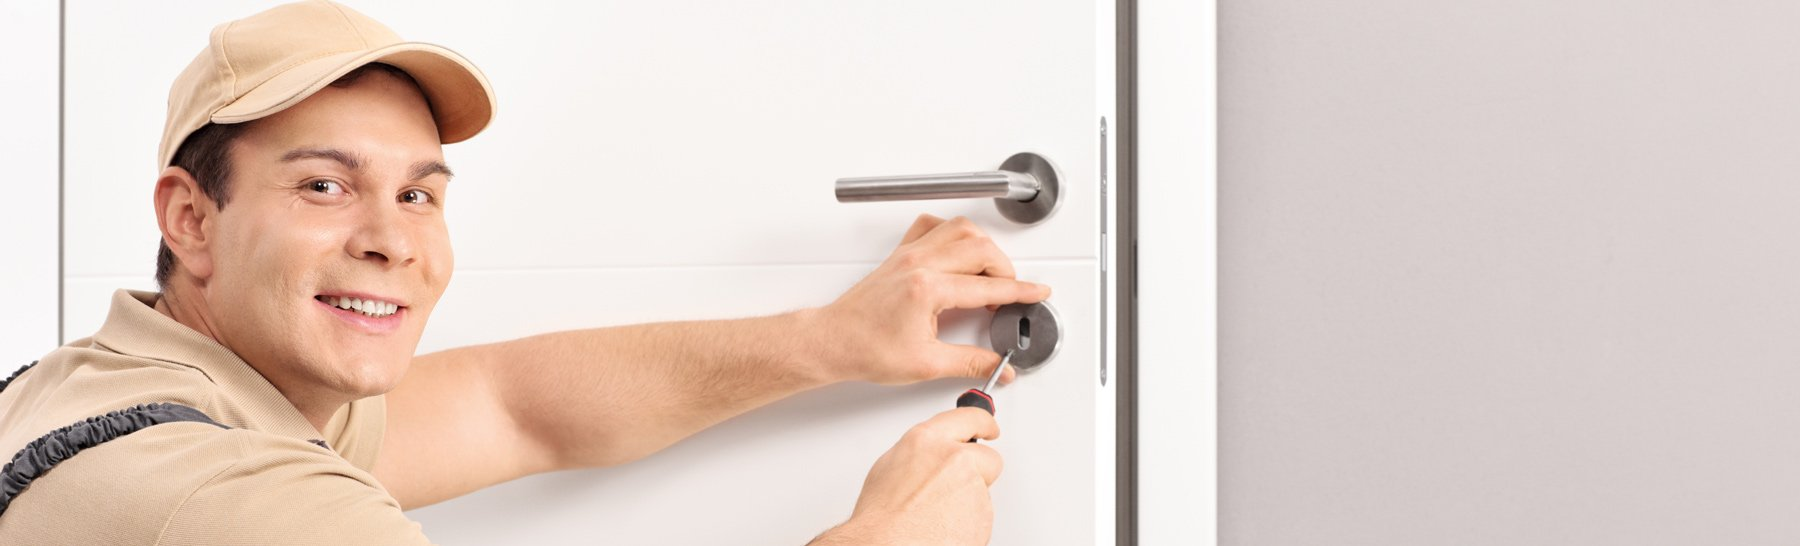 hand combination lock local locksmiths